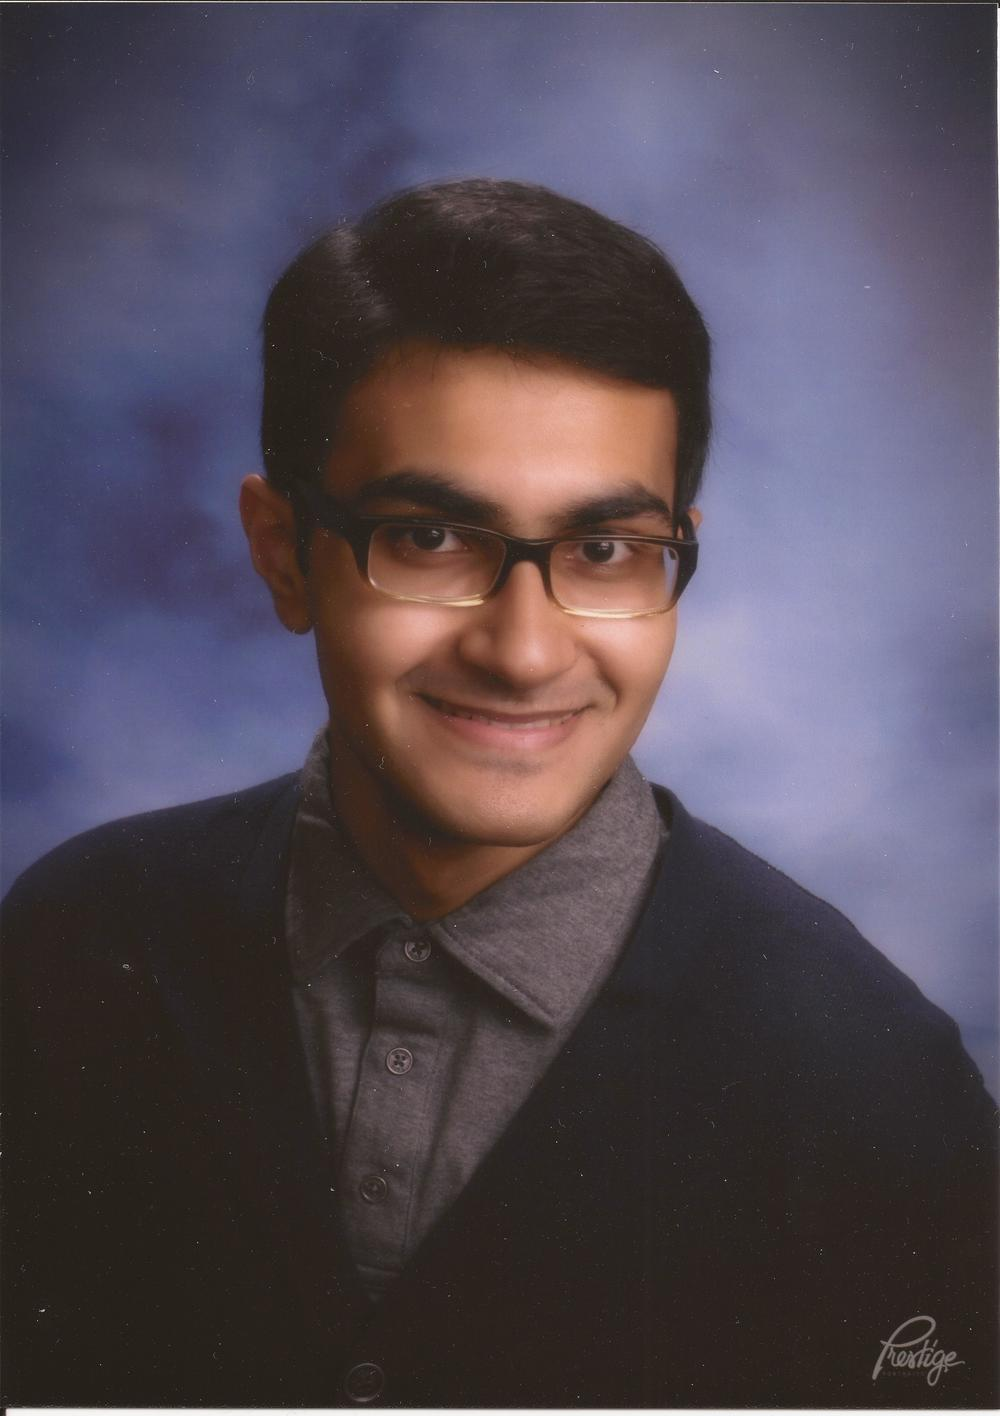 "Saljooq Asif is currently a student at Columbia University, where he will receive his Master of Science in Narrative Medicine in May 2017. Asif is interested in the intersection between medicine and the humanities as well as media portrayals of race, gender, and class in regard to healthcare. His academic paper ""Don't Be A Warrior: Be A Doctor:"" Healing and Love After Wartime Trauma appears in the Spring 2016 Intima."